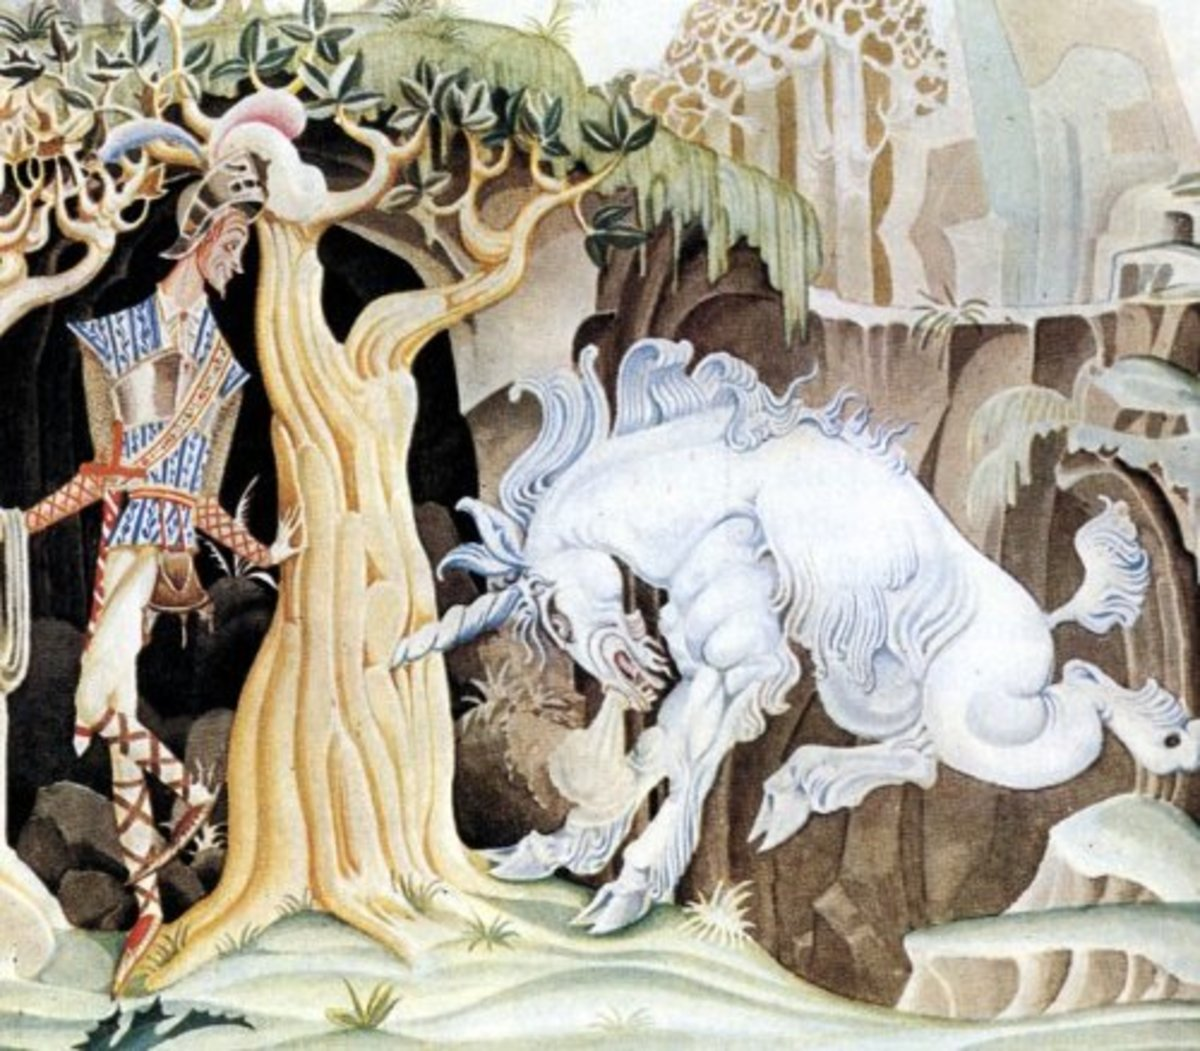 "Here we show a portion of 'The Valiant Tailor' - a design by Kay Nielsen from his suite published in ""Hansel and Gretel and other stories by the Brothers Grimm"" (1925)."